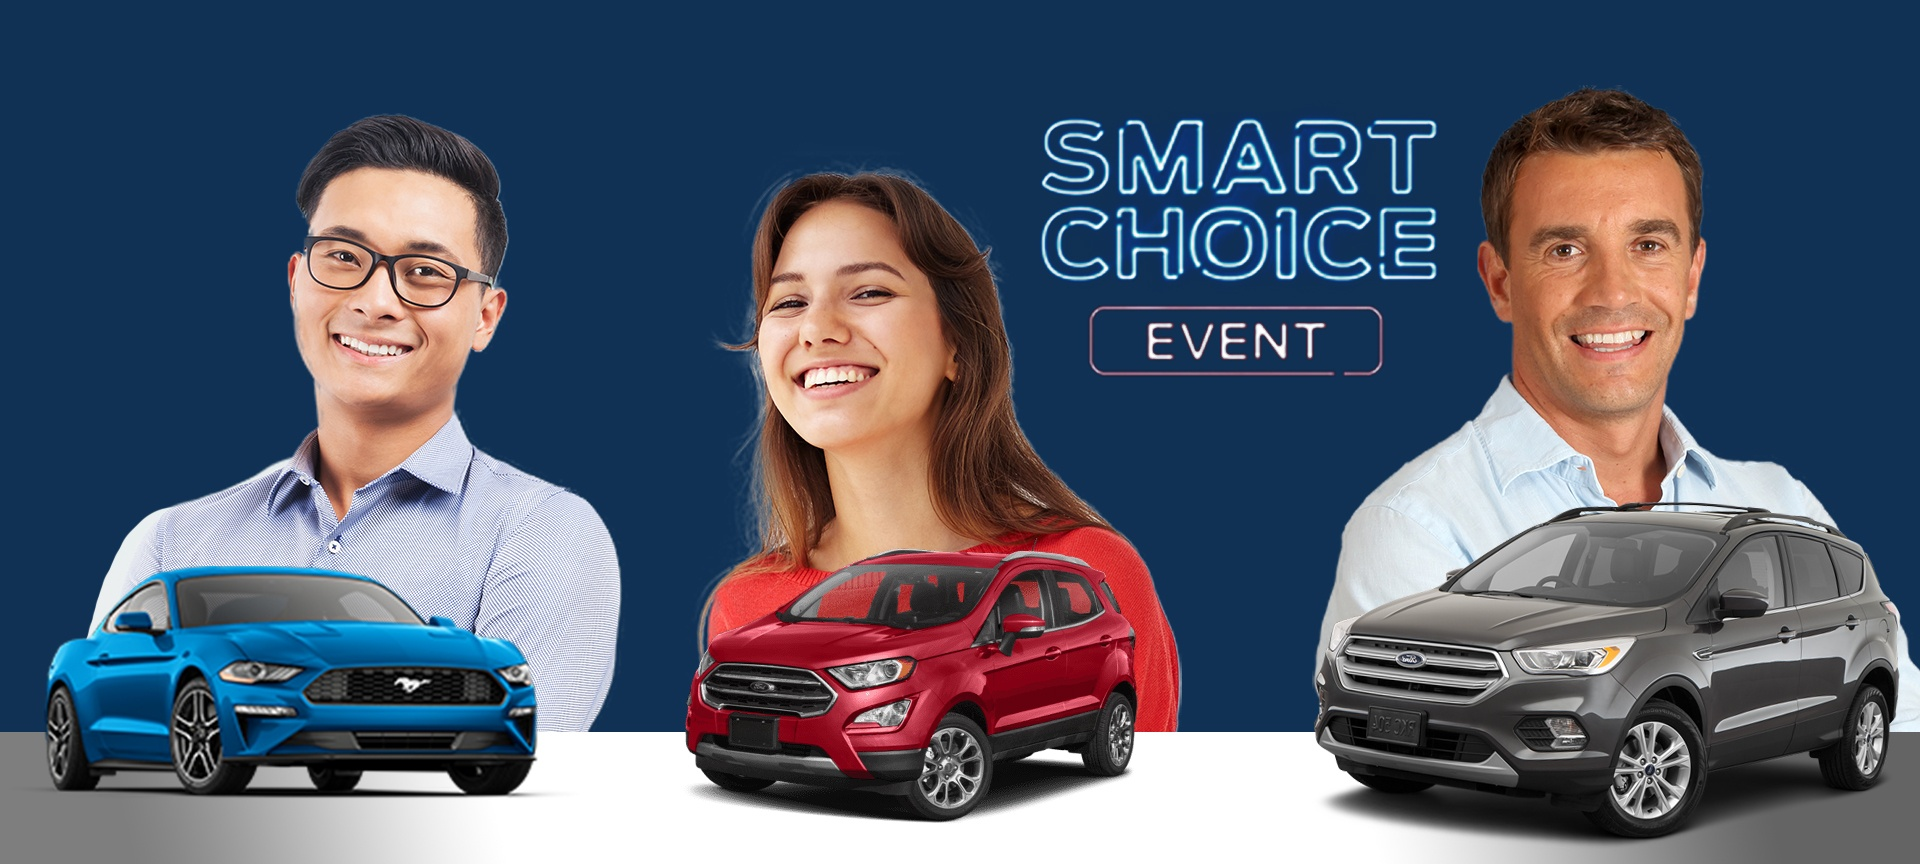 Mainland Ford Smart Choice